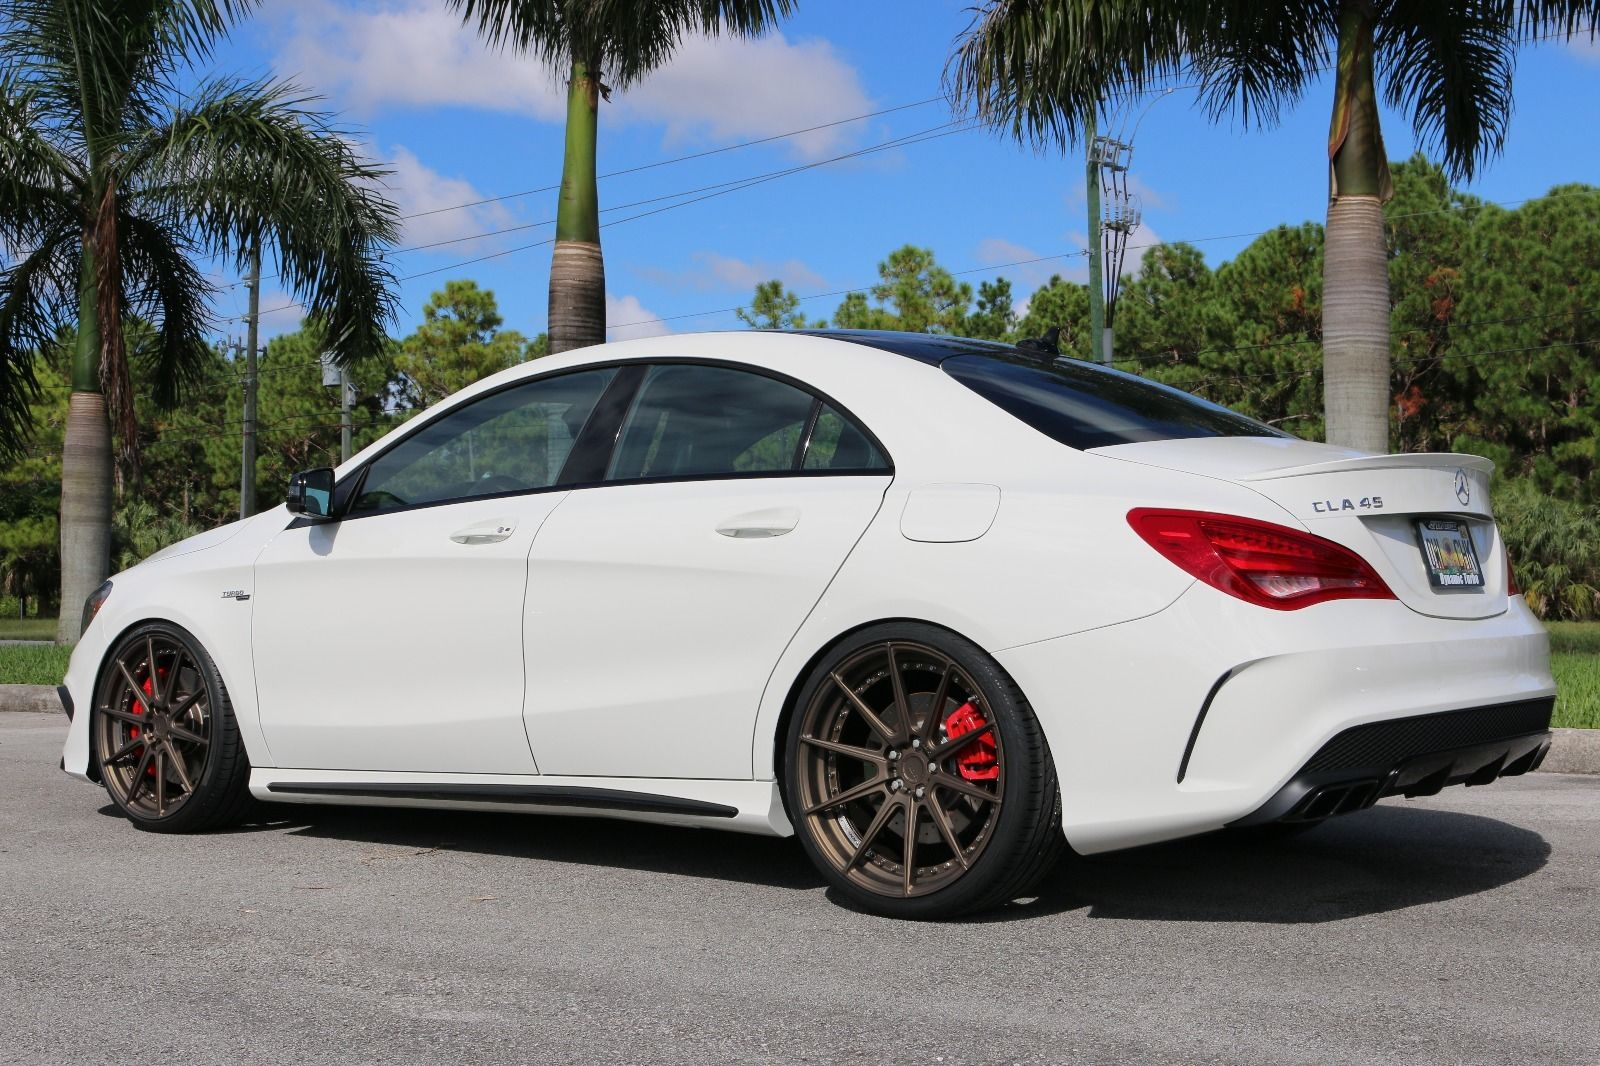 2014 mercedes benz cla45 amg on adv1 m v2 sl wheels for Mercedes benz wheel